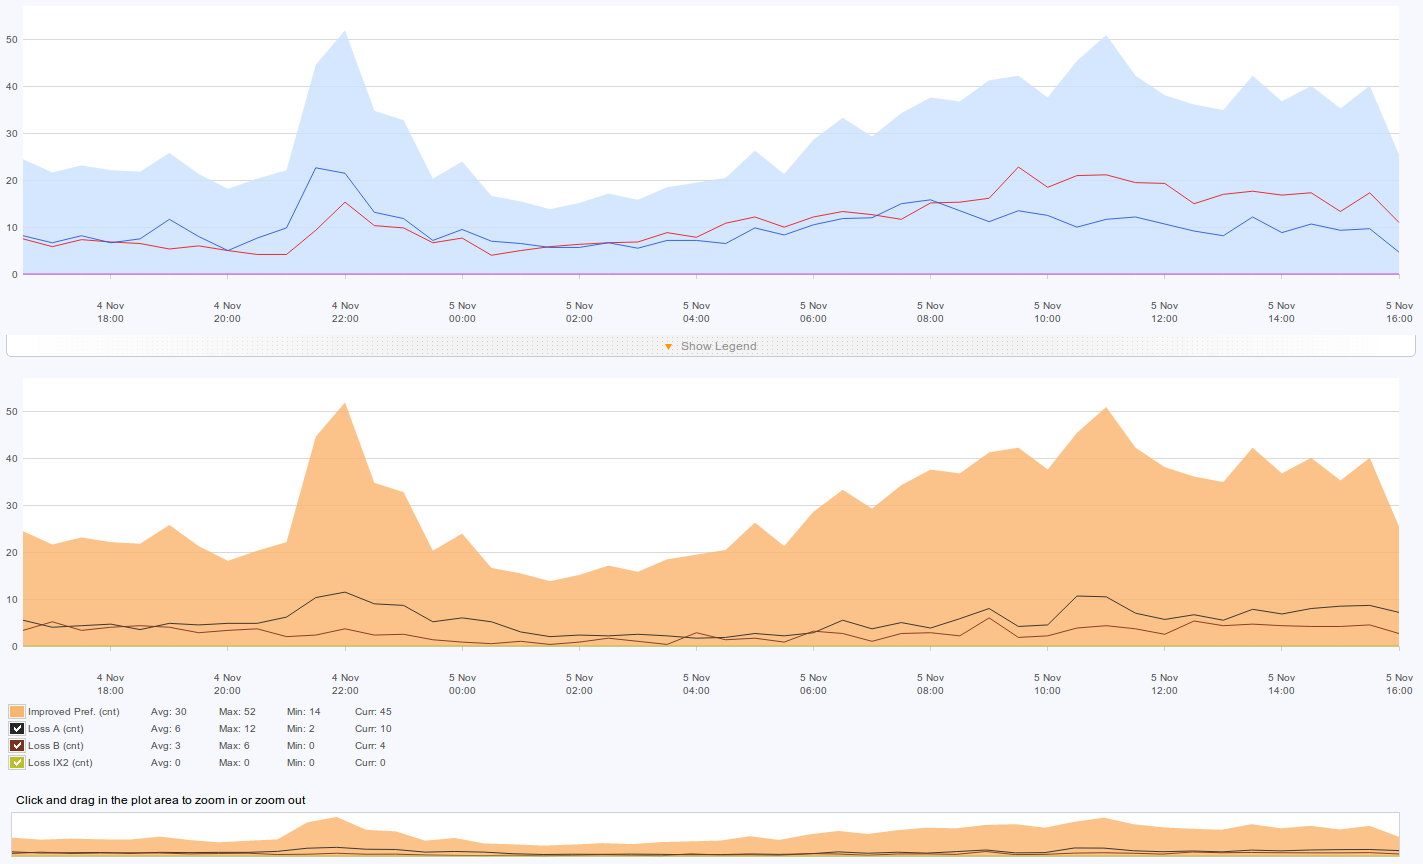 figure screenshots/graph-9-latency-improvements-by-peer.png